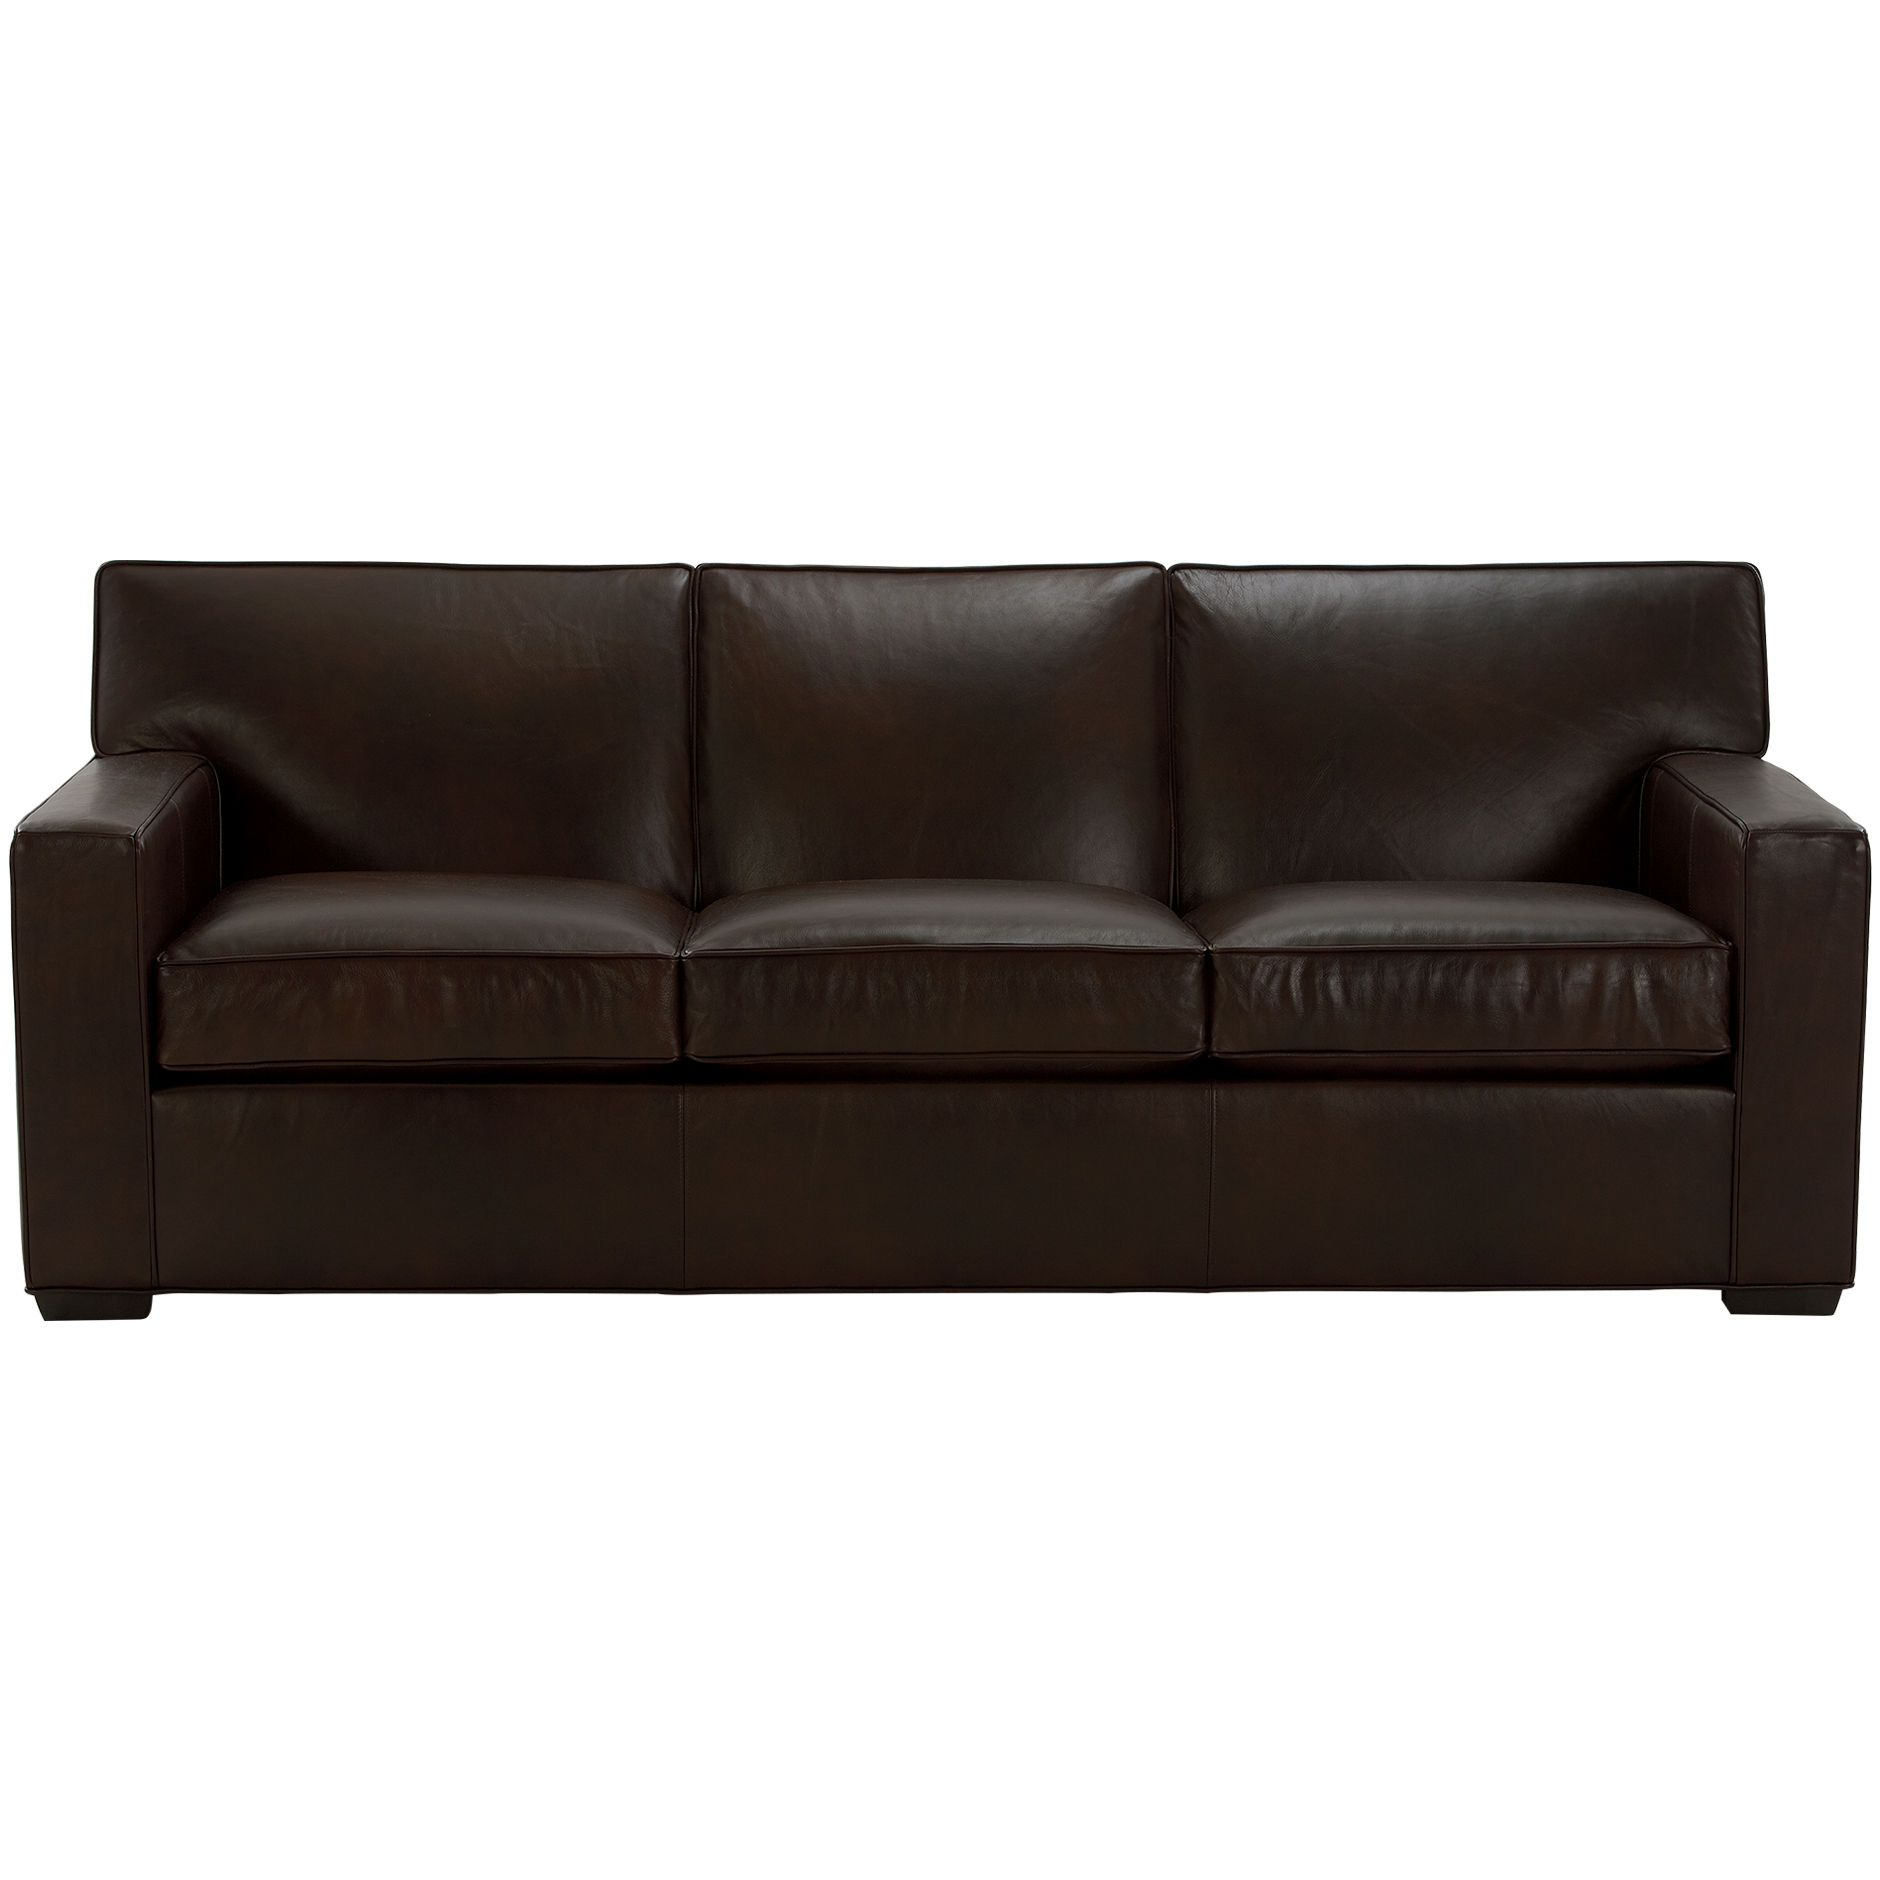 Kendall Leather Sofa Cidy Brazil